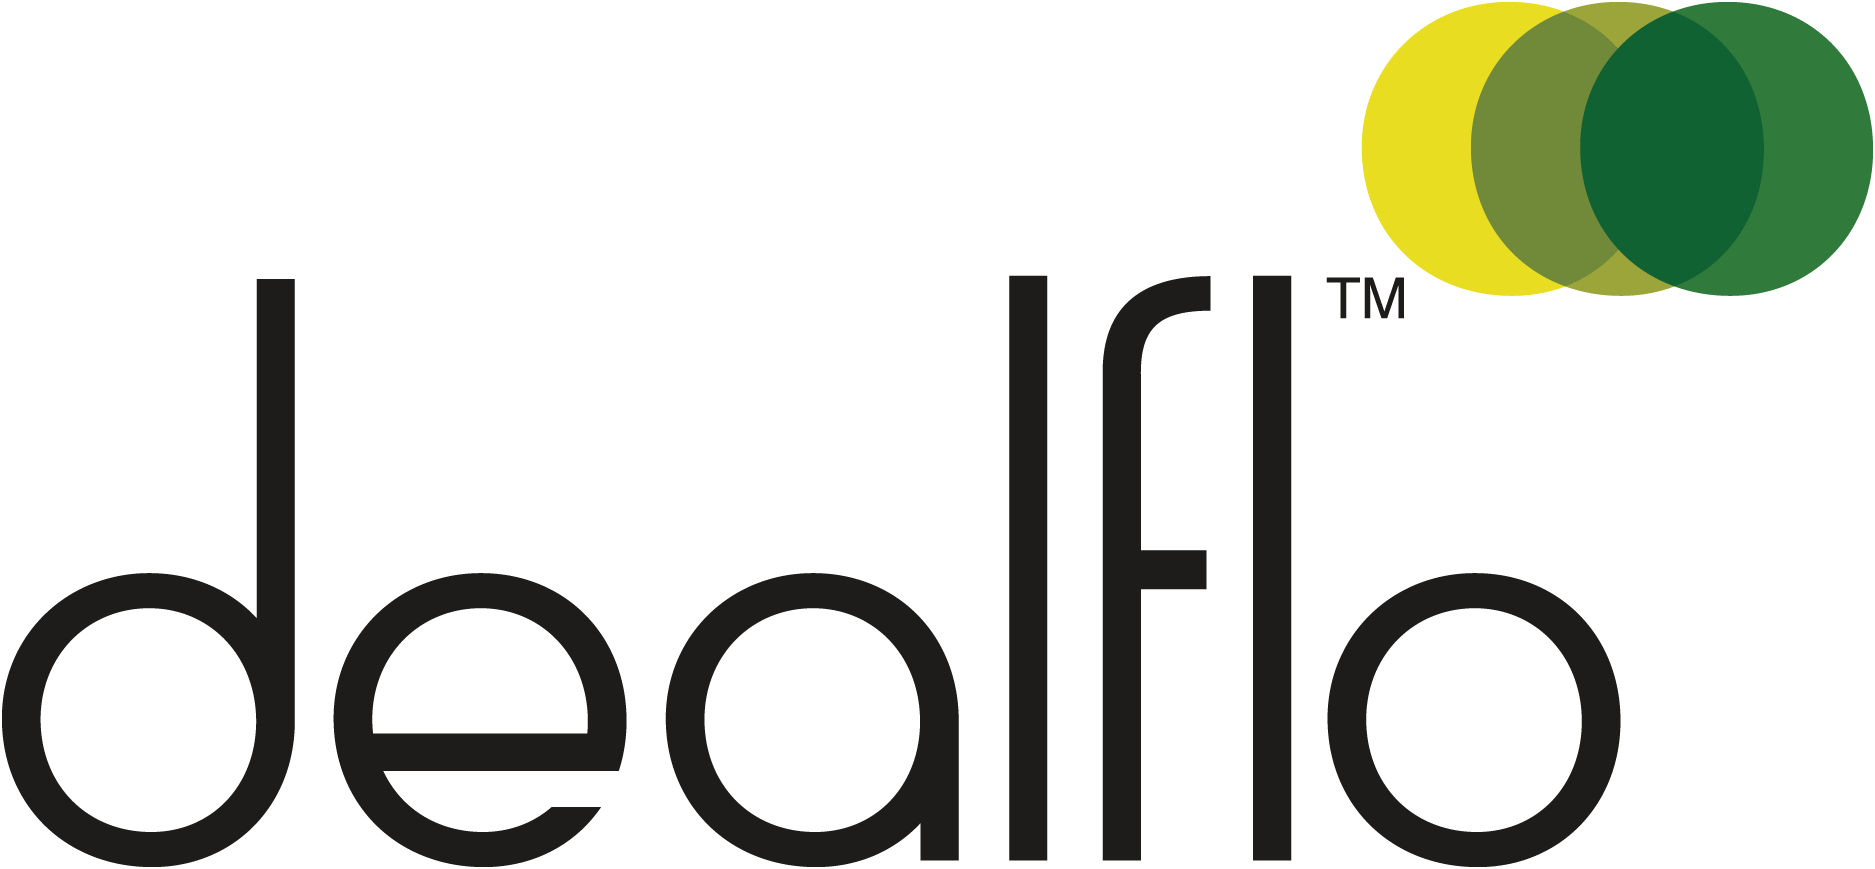 Dealflo_logo_no_strapline